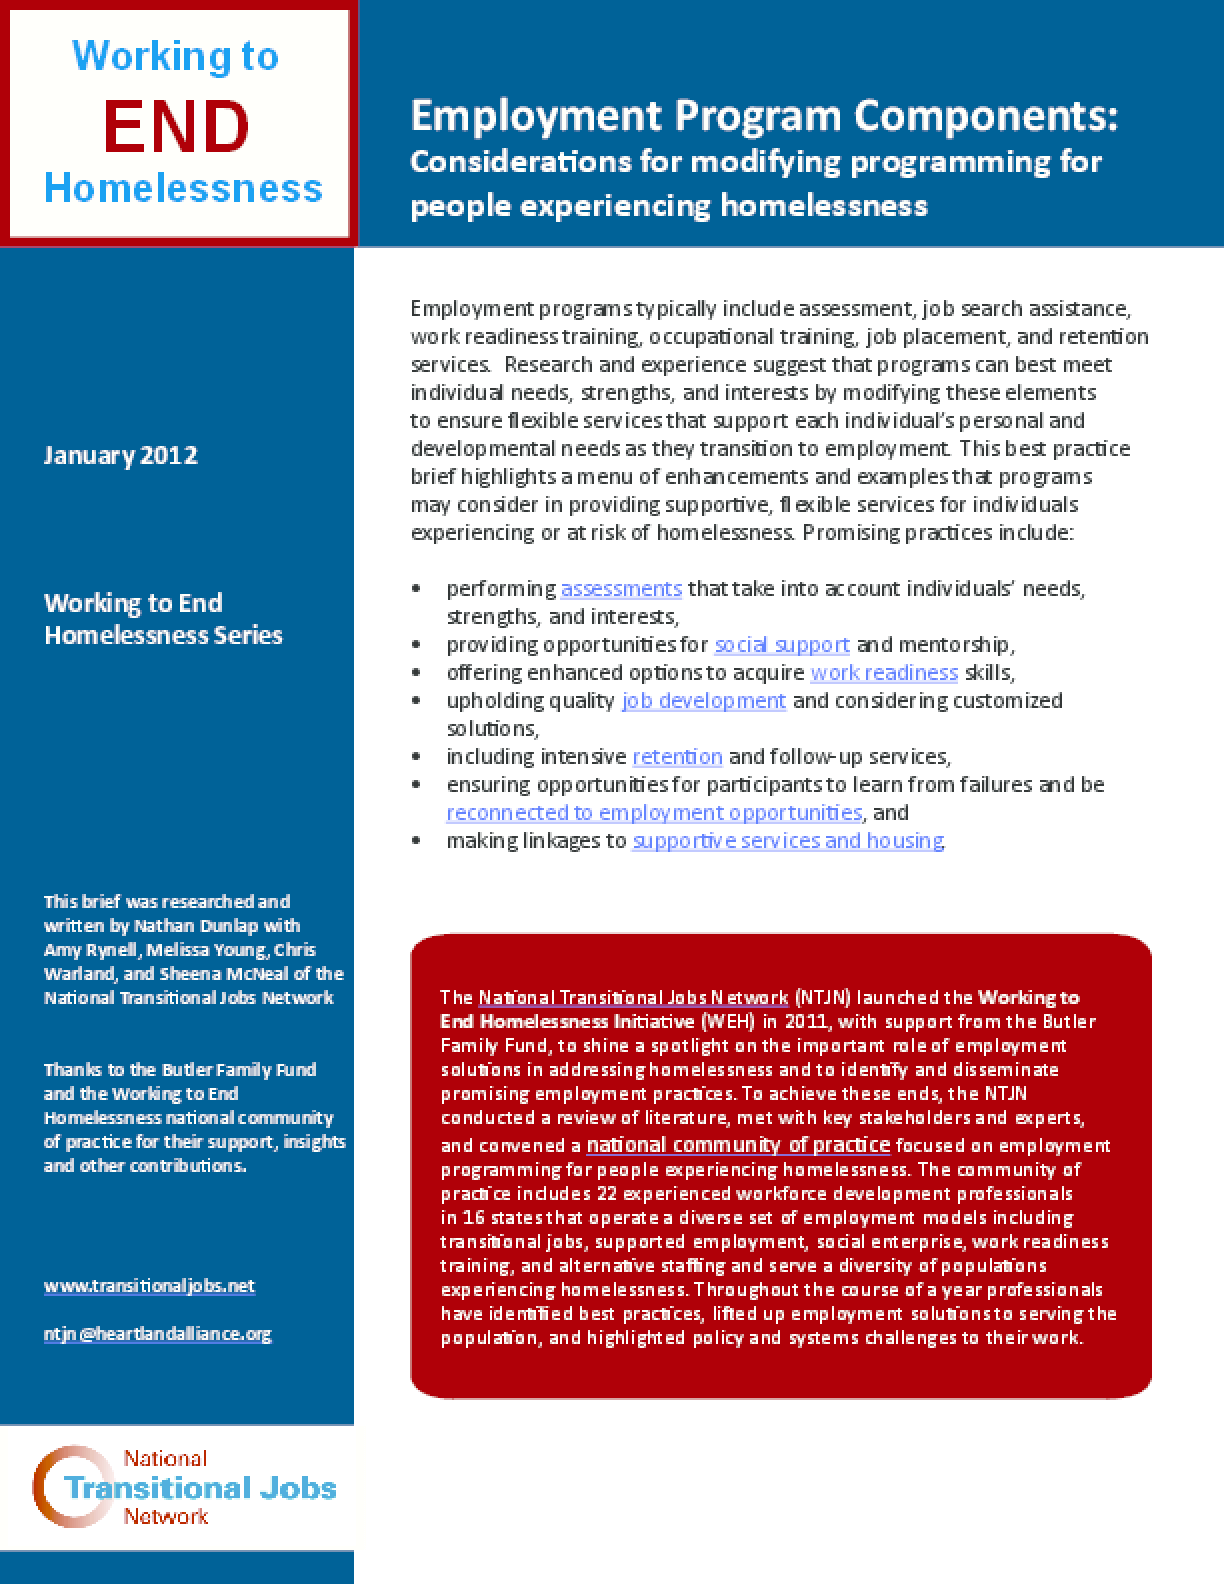 Employment Program Components: Considerations for Modifying Programming for People Experiencing Homelessness